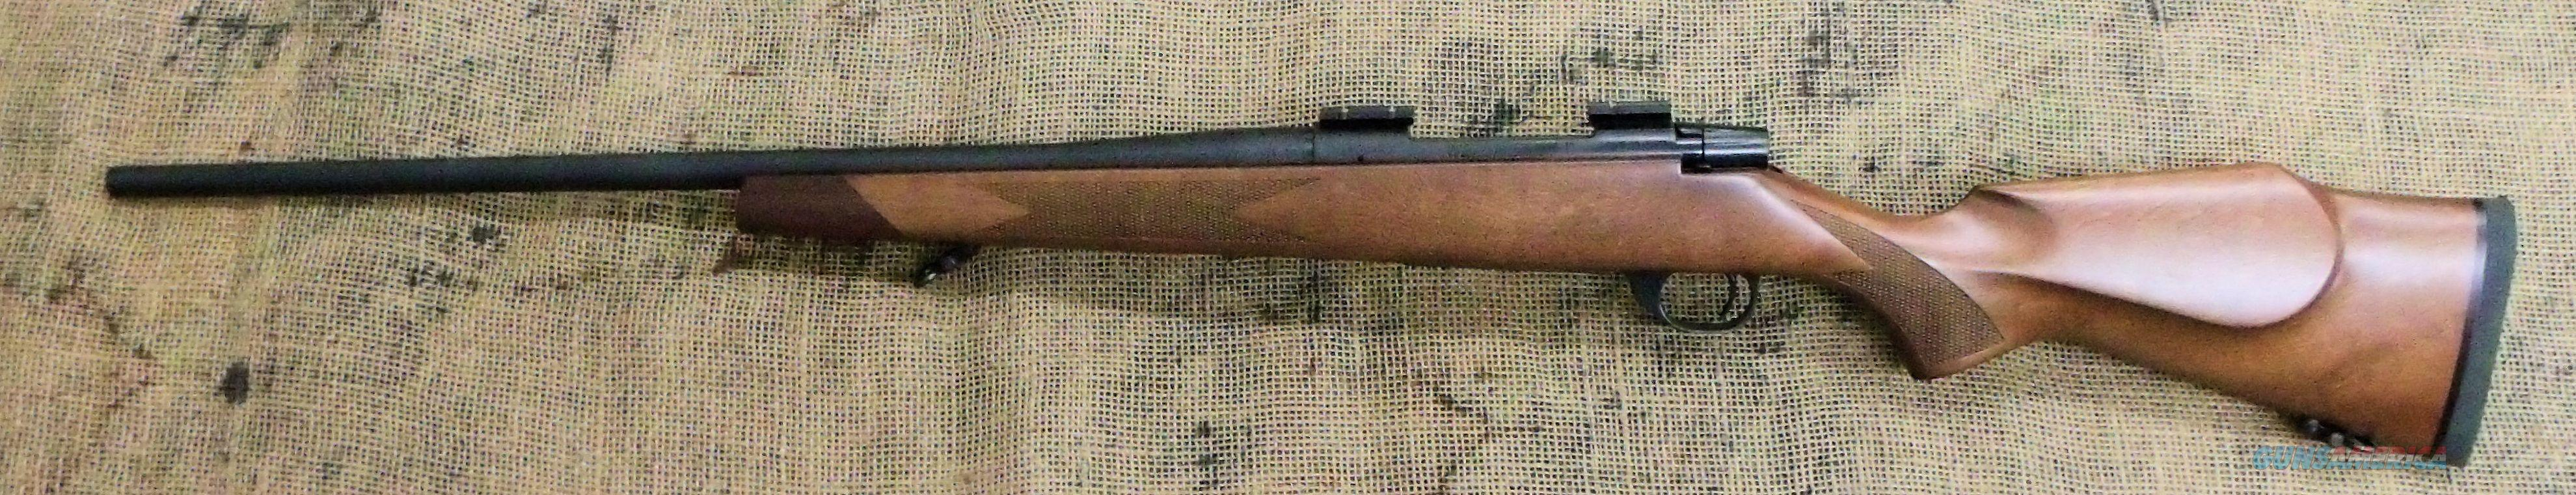 WEATHERBY Vanguard II NWTF Rifle .270 Win. Cal.  Guns > Rifles > Weatherby Rifles > Sporting